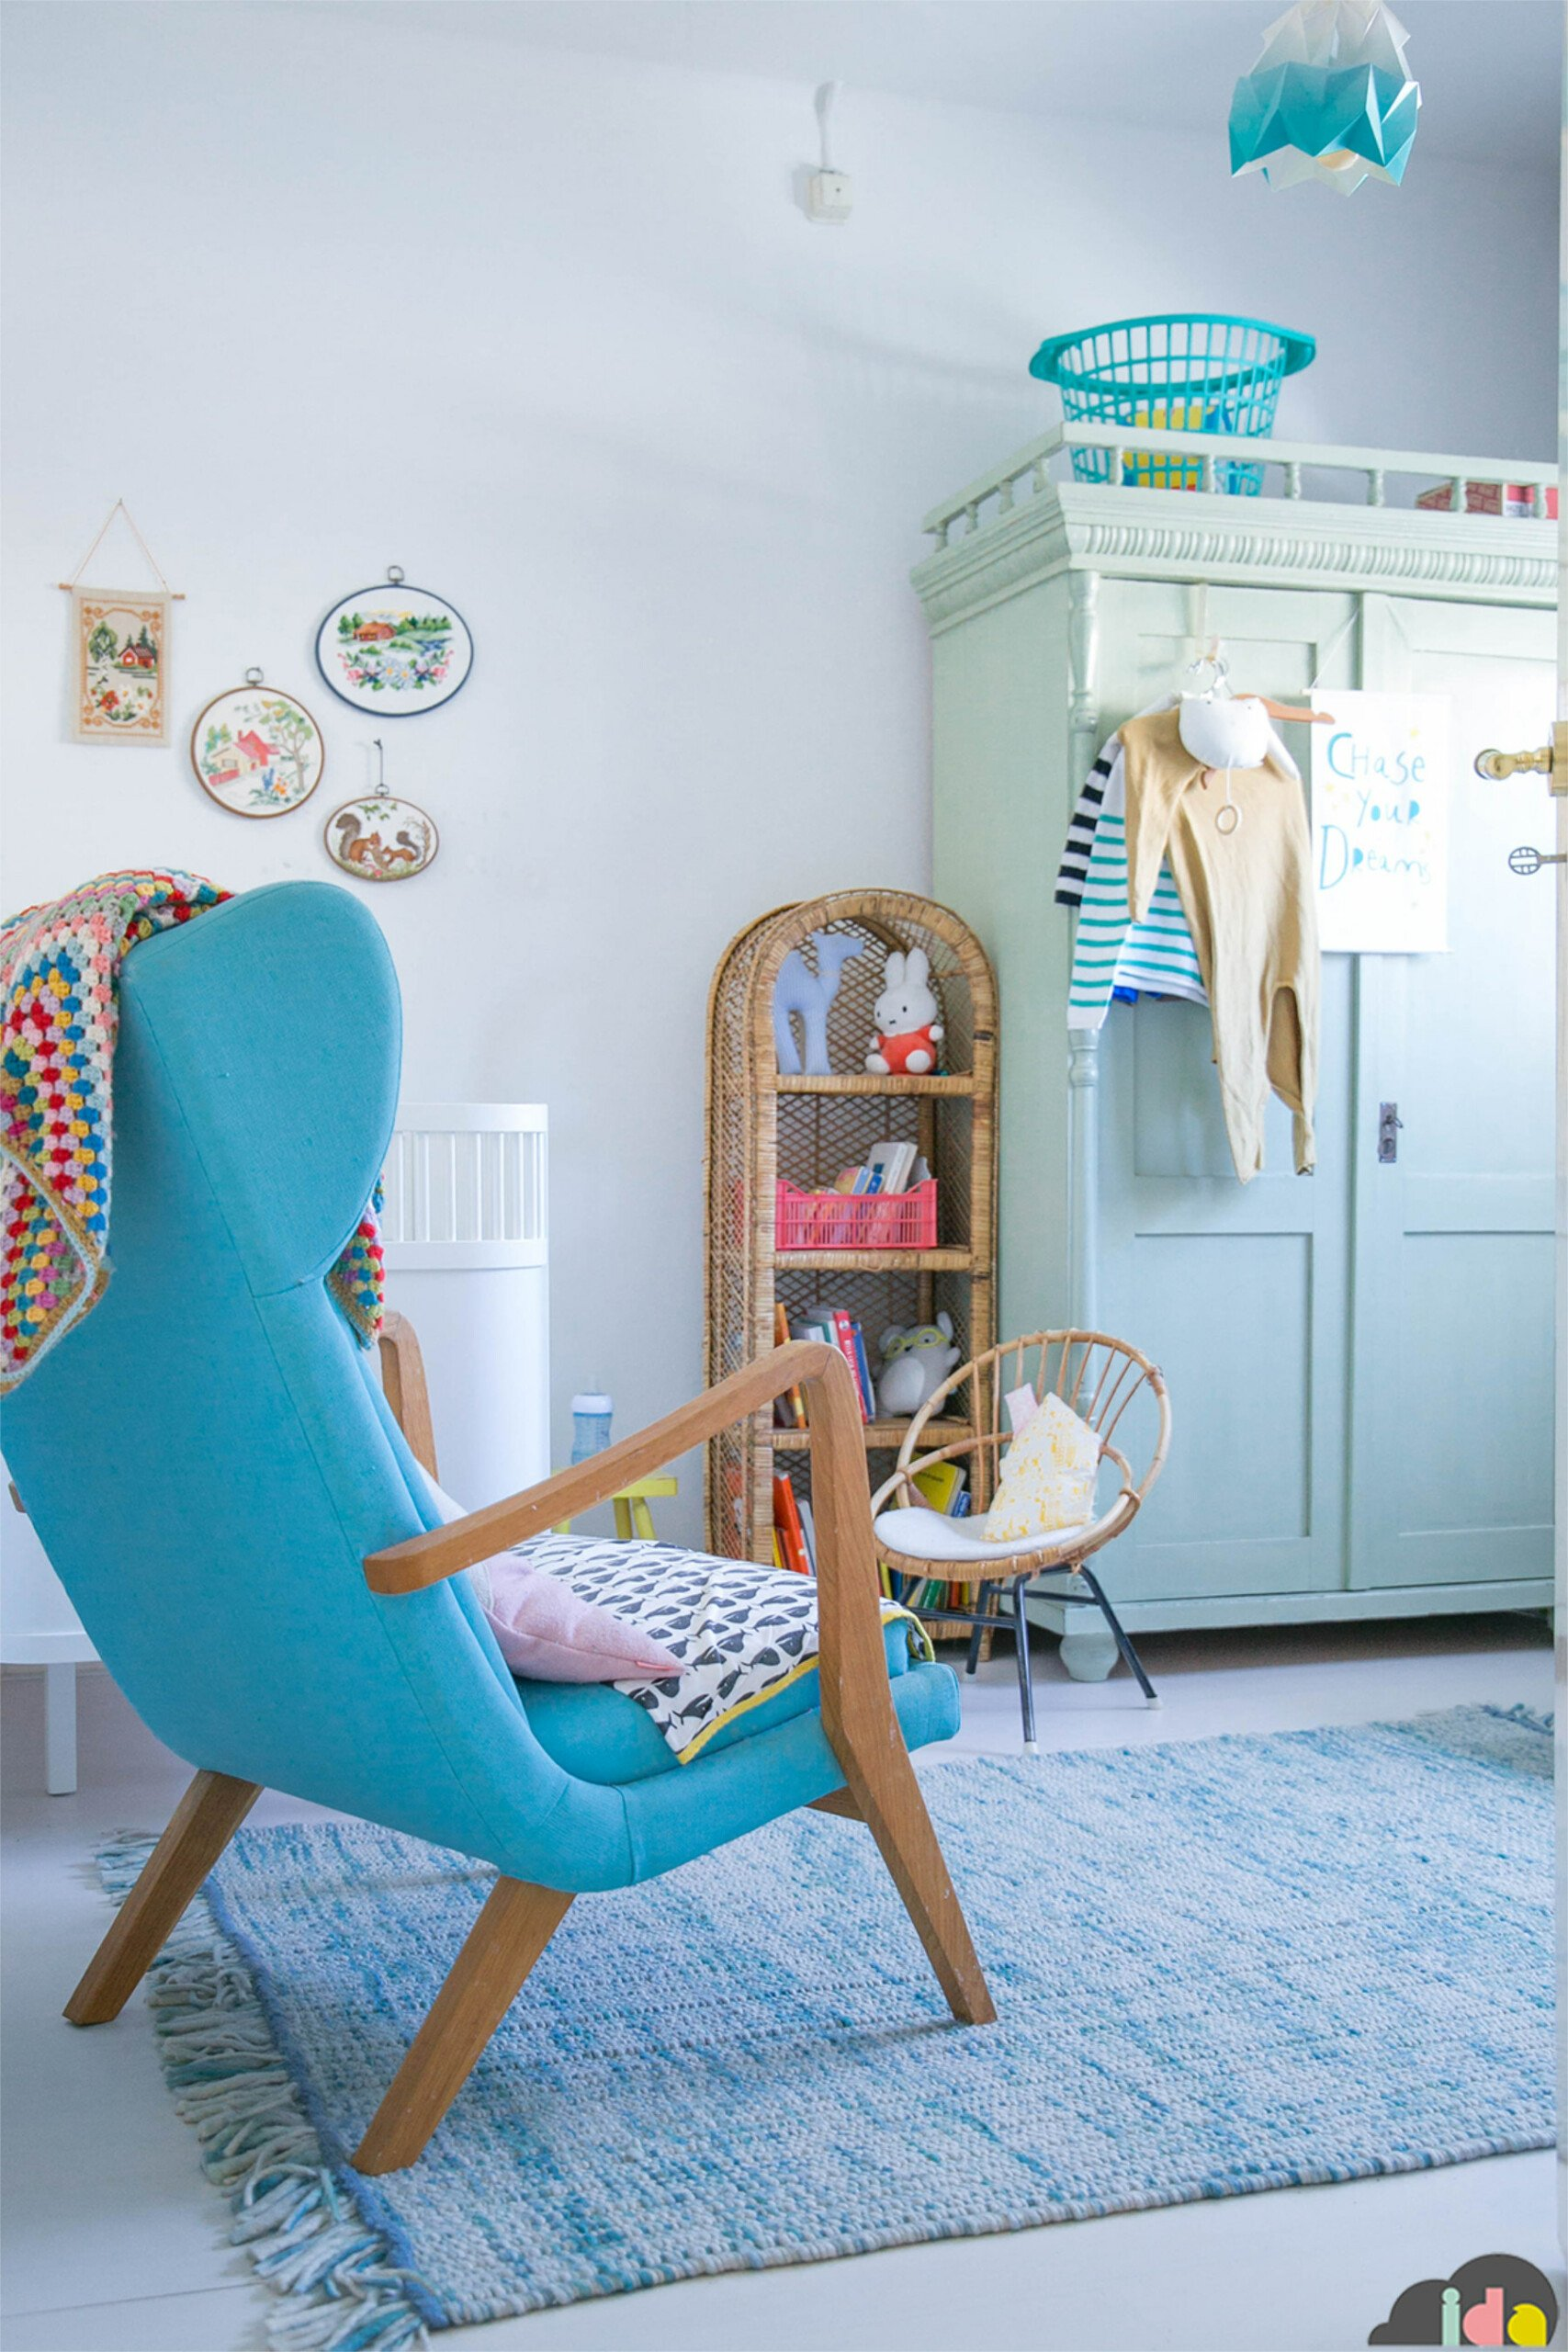 IDAinteriorlifestyle 10 kids room colourful home scaled